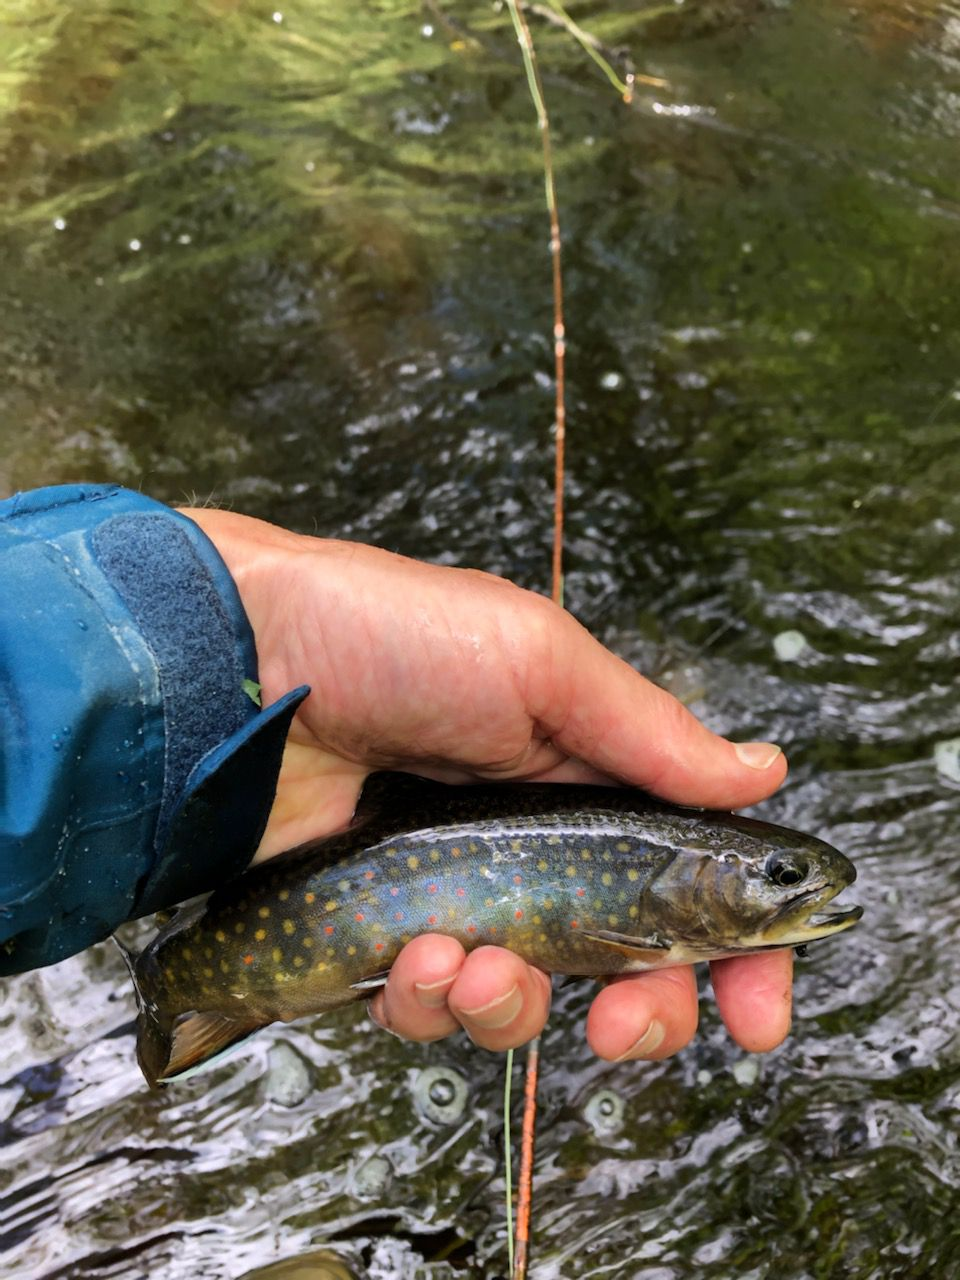 A brook trout from northern Wisconsin. Provided by Pete Lamar